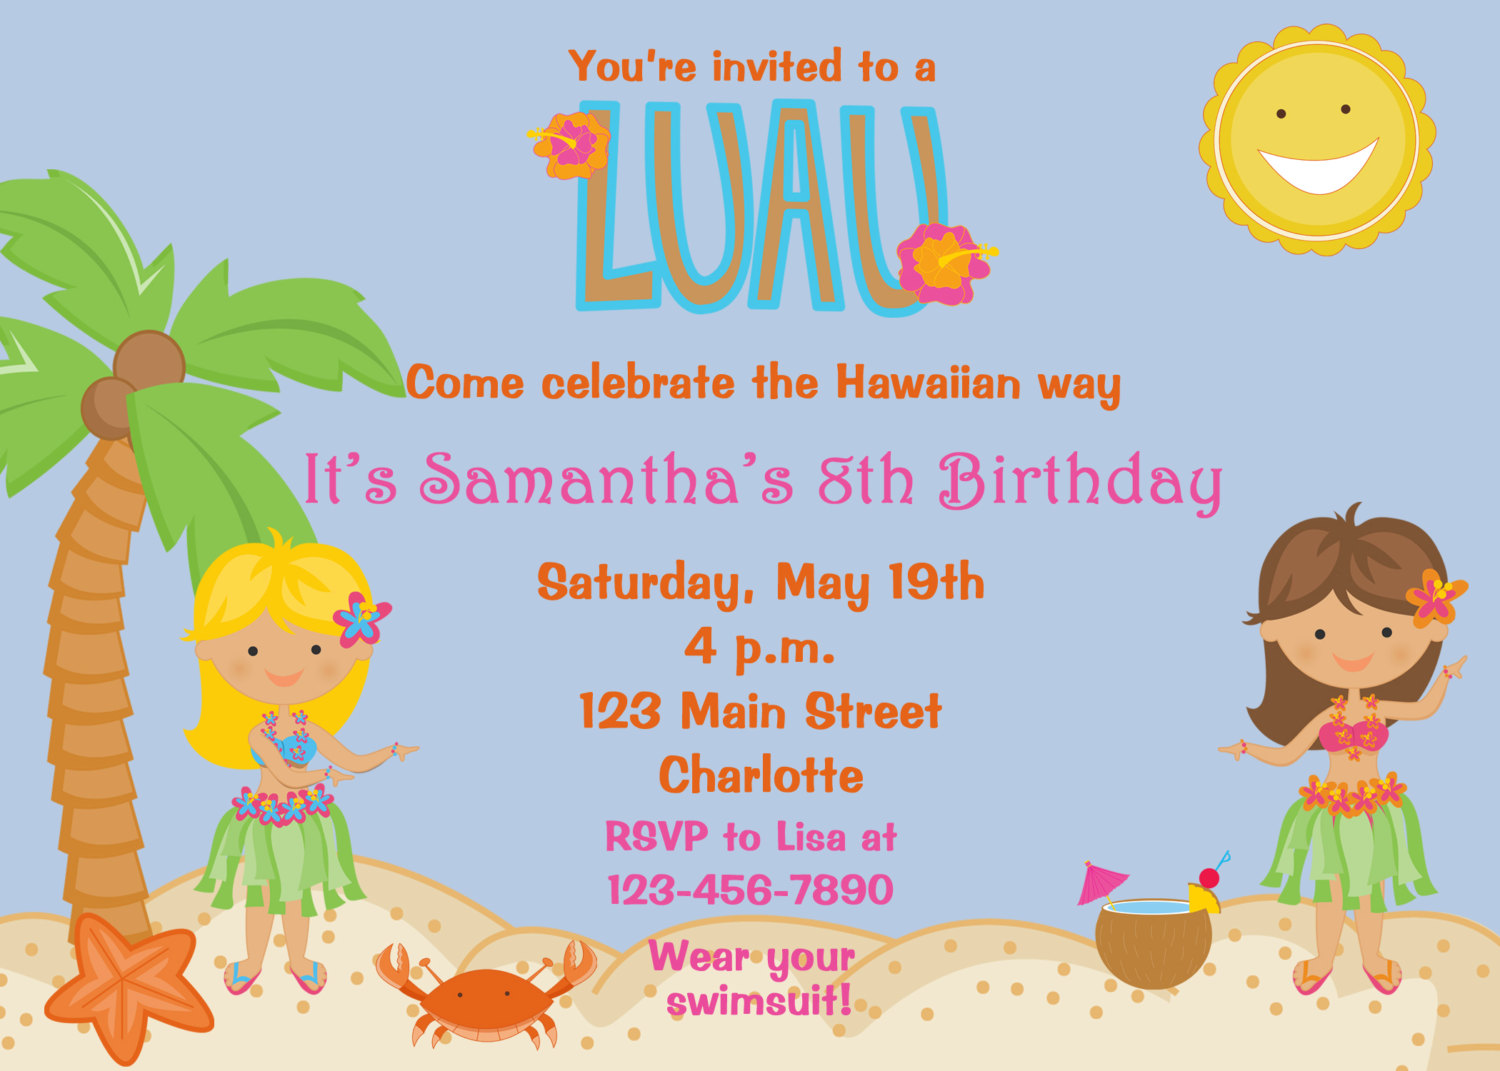 Luau clipart luau invitation. Birthday party invitations